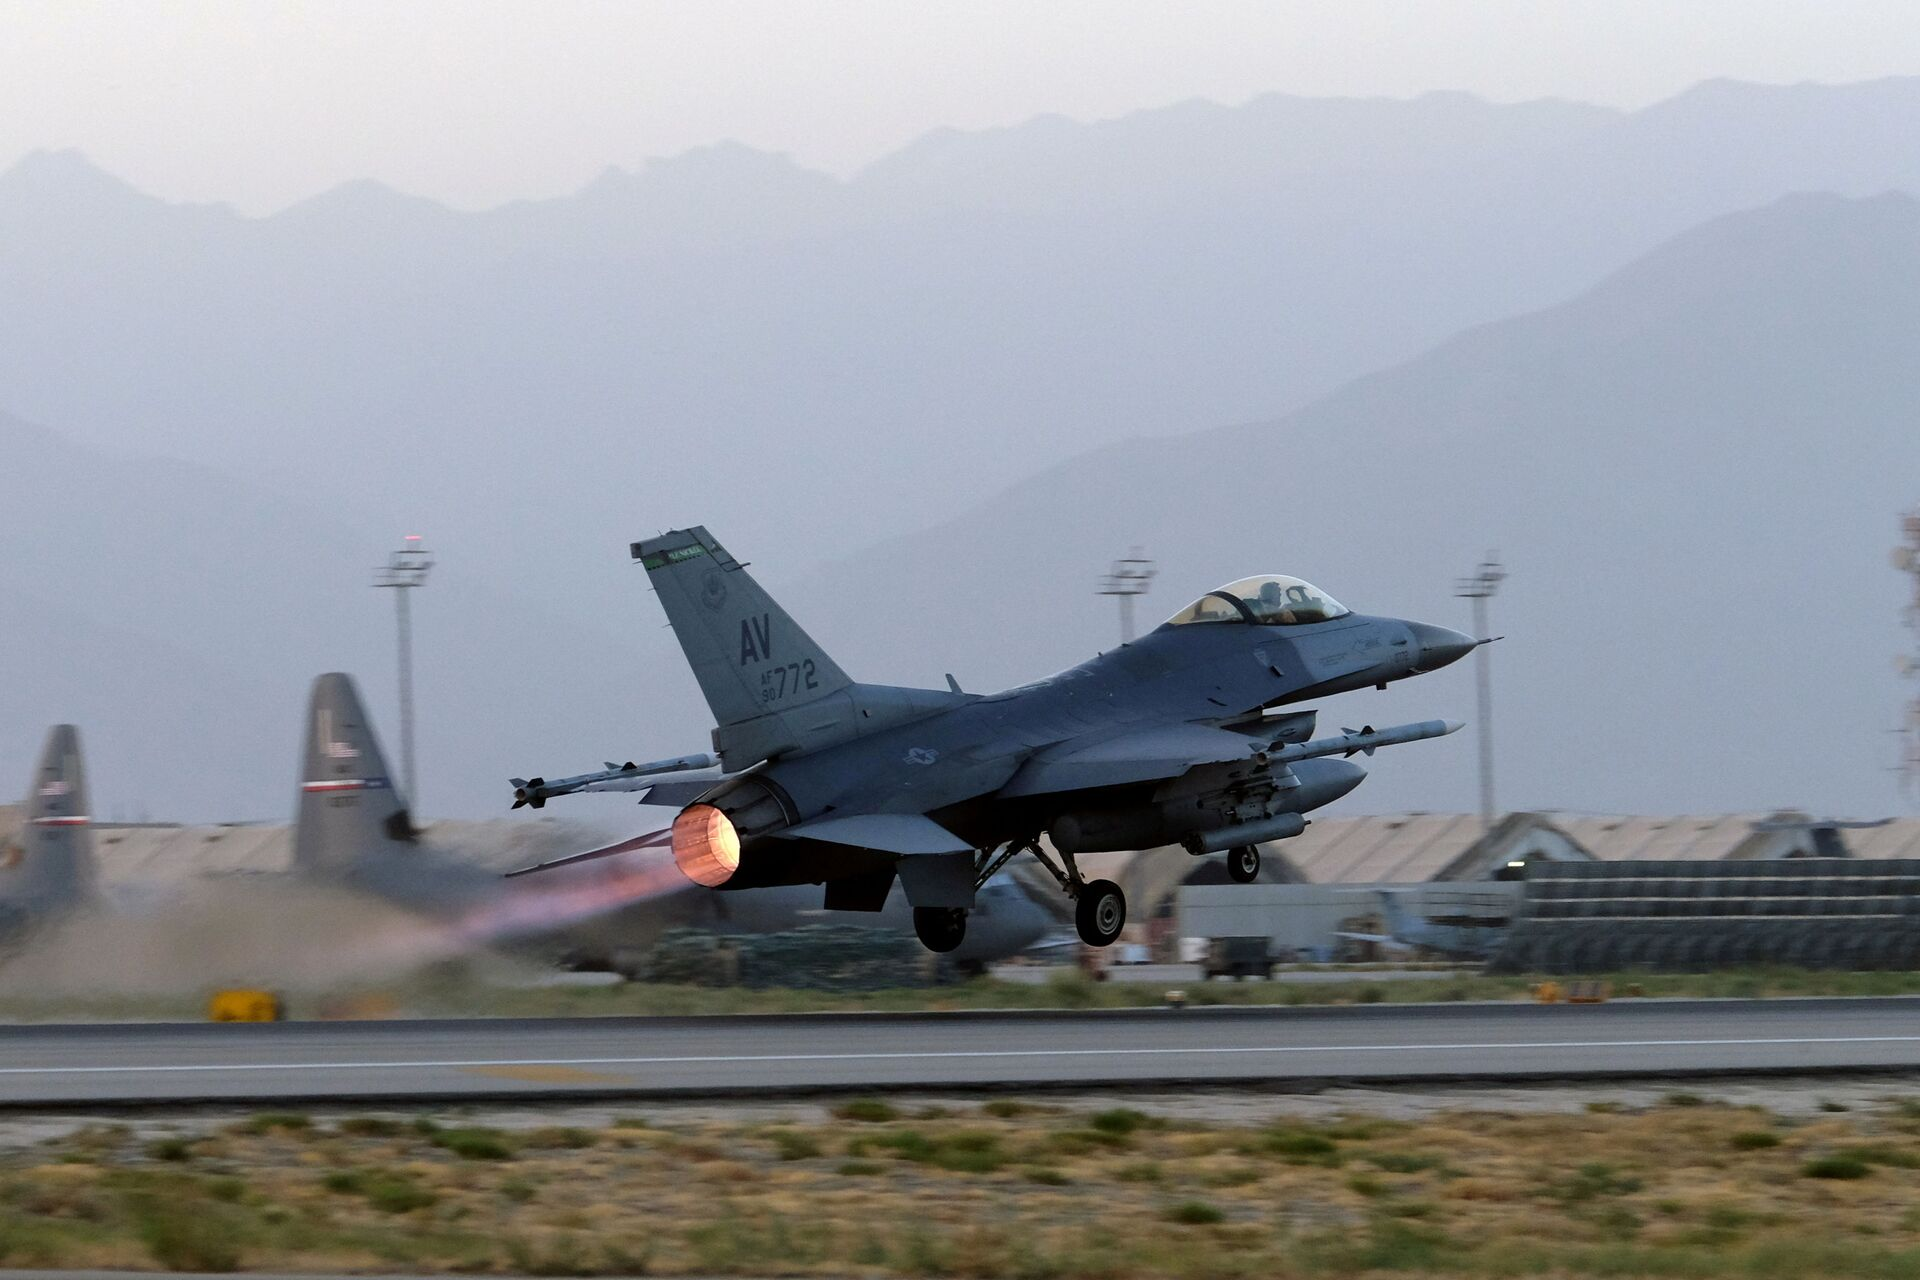 A U.S. Air Force F-16 Fighting Falcon aircraft takes off for a nighttime mission at Bagram Airfield, Afghanistan, August 22, 2017. Picture taken August 22, 2017.  - Sputnik International, 1920, 07.09.2021